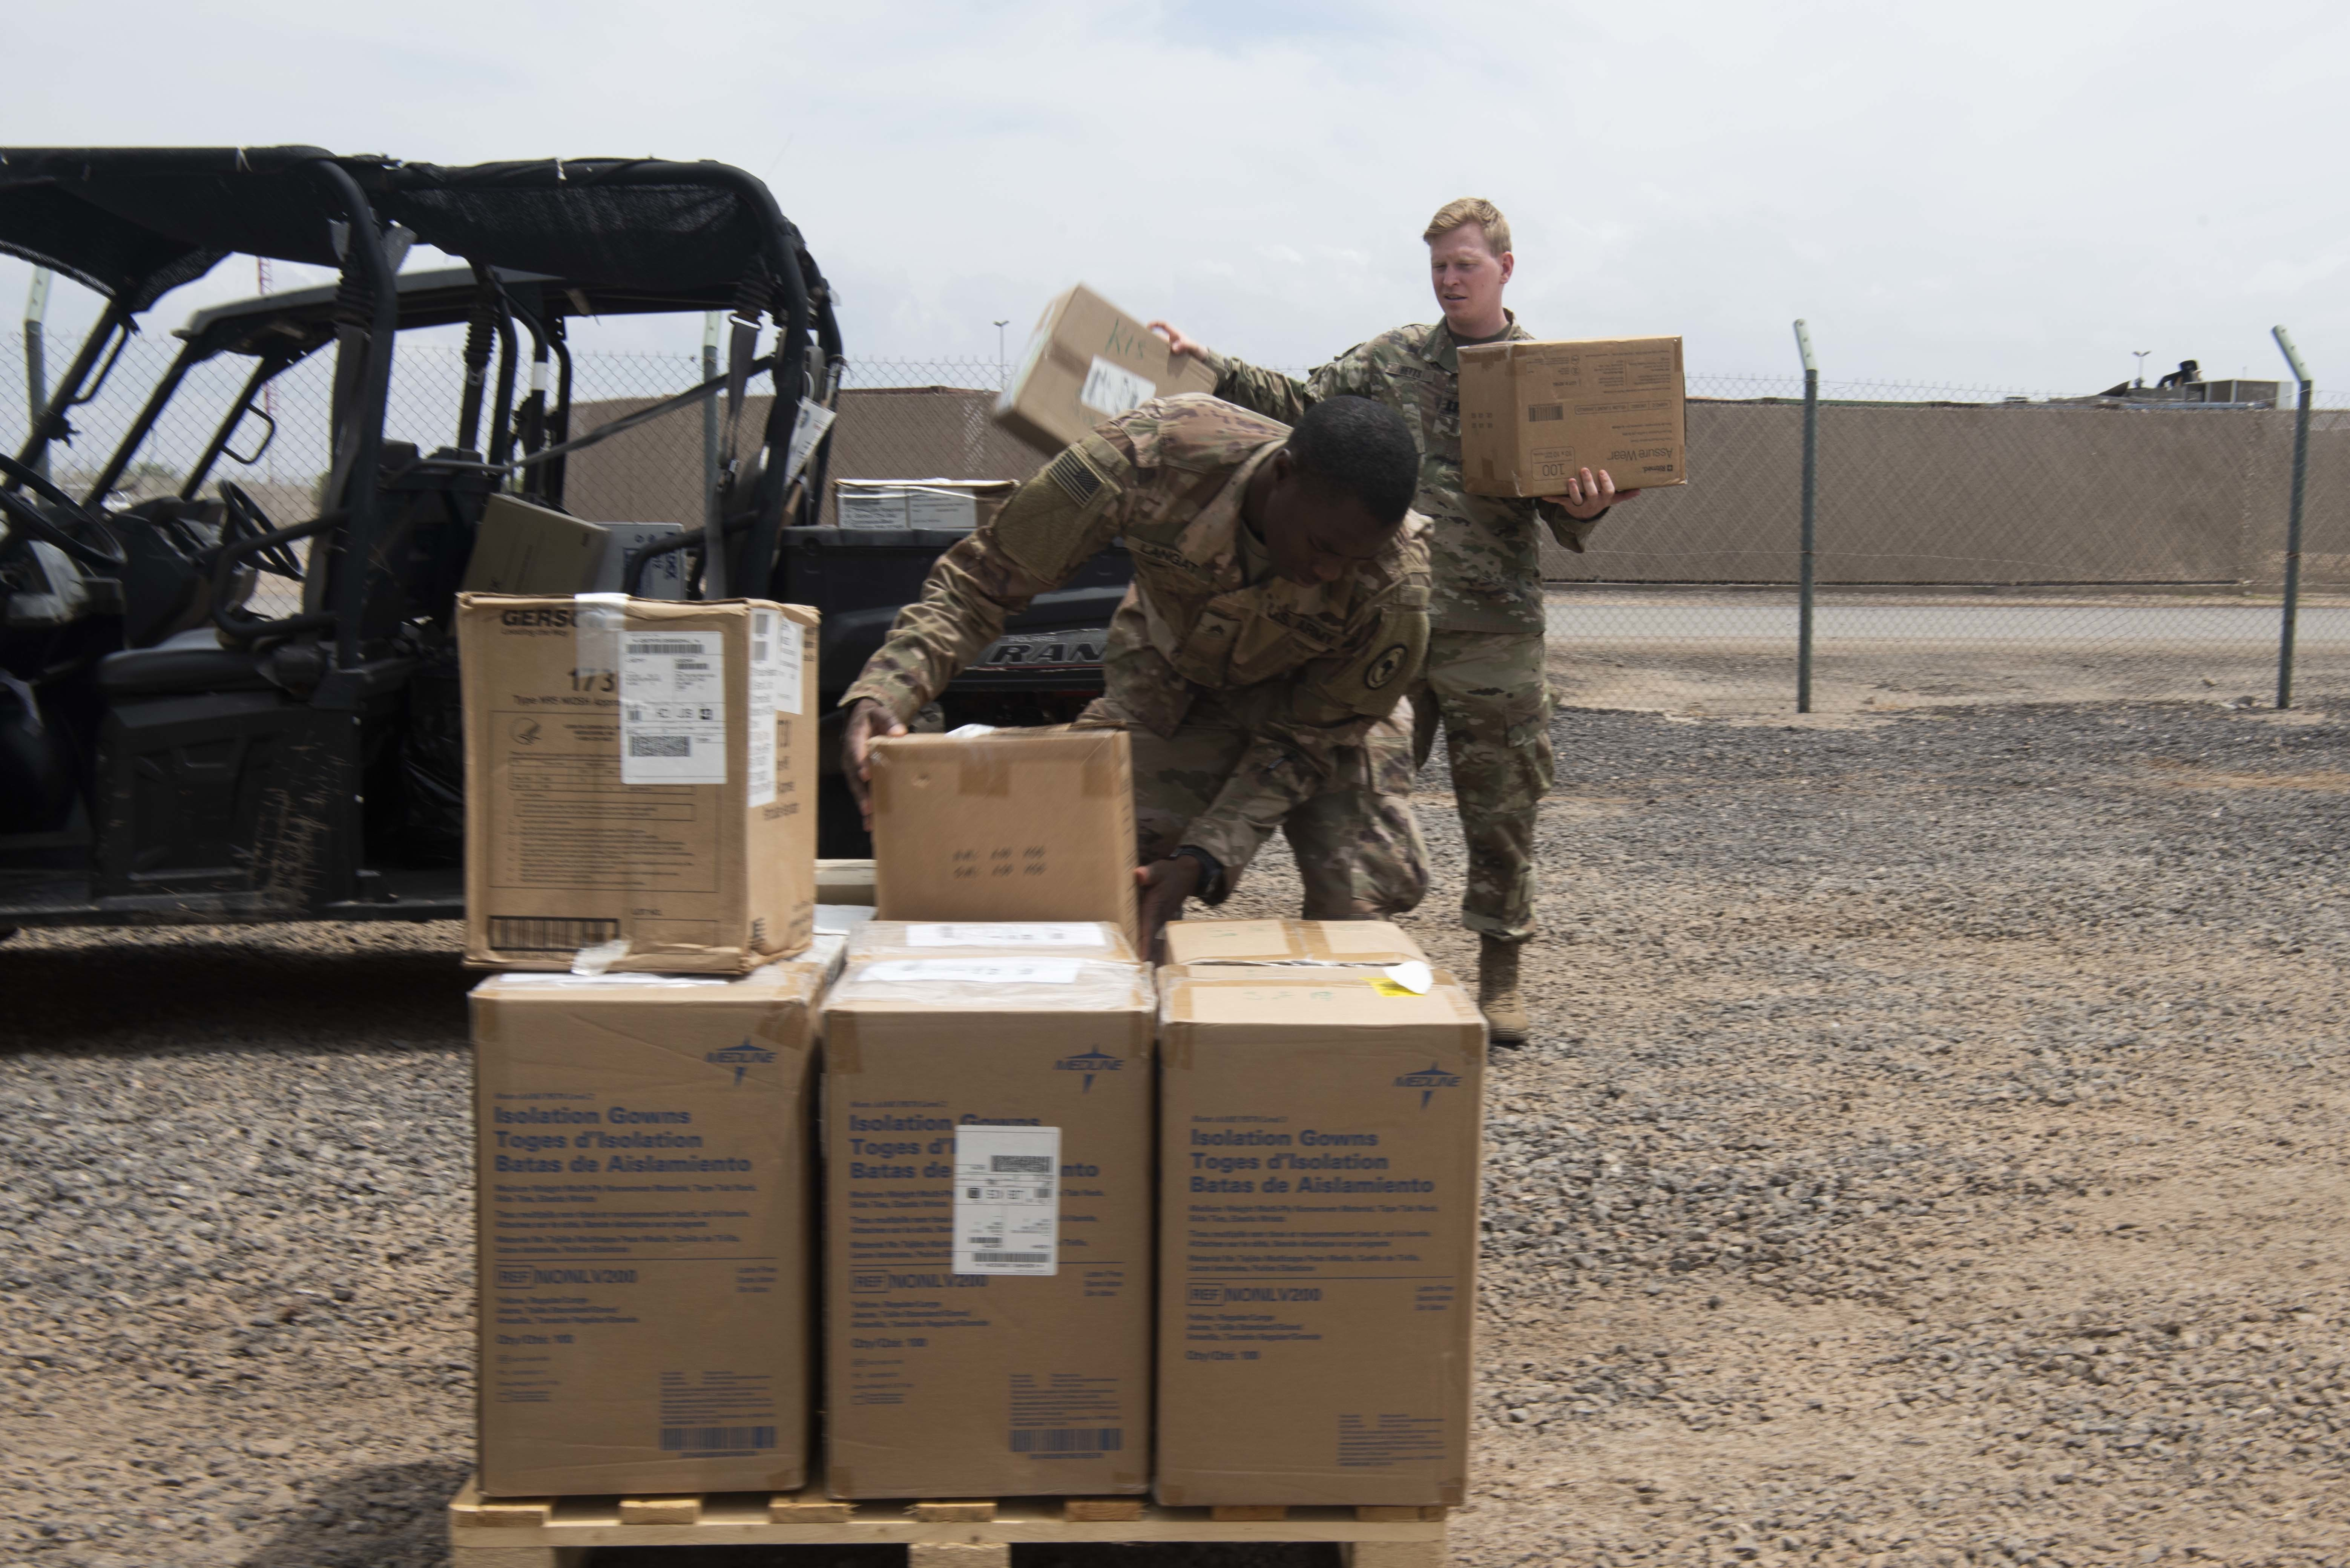 Brian Clark, a project supervisor for the Defense Logistics Agency (DLA), removes a cover from a pallet of medical equipment at Camp Lemonnier, Djibouti, Apr. 22, 2020. The medical equipment is part of Combined Joint Task Force-Horn of Africa's (CJTF-HOA) protective measures for COVID-19 to maintain the health of the force. (U.S. Air Force photo by Tech. Sgt. Ashley Nicole Taylor)